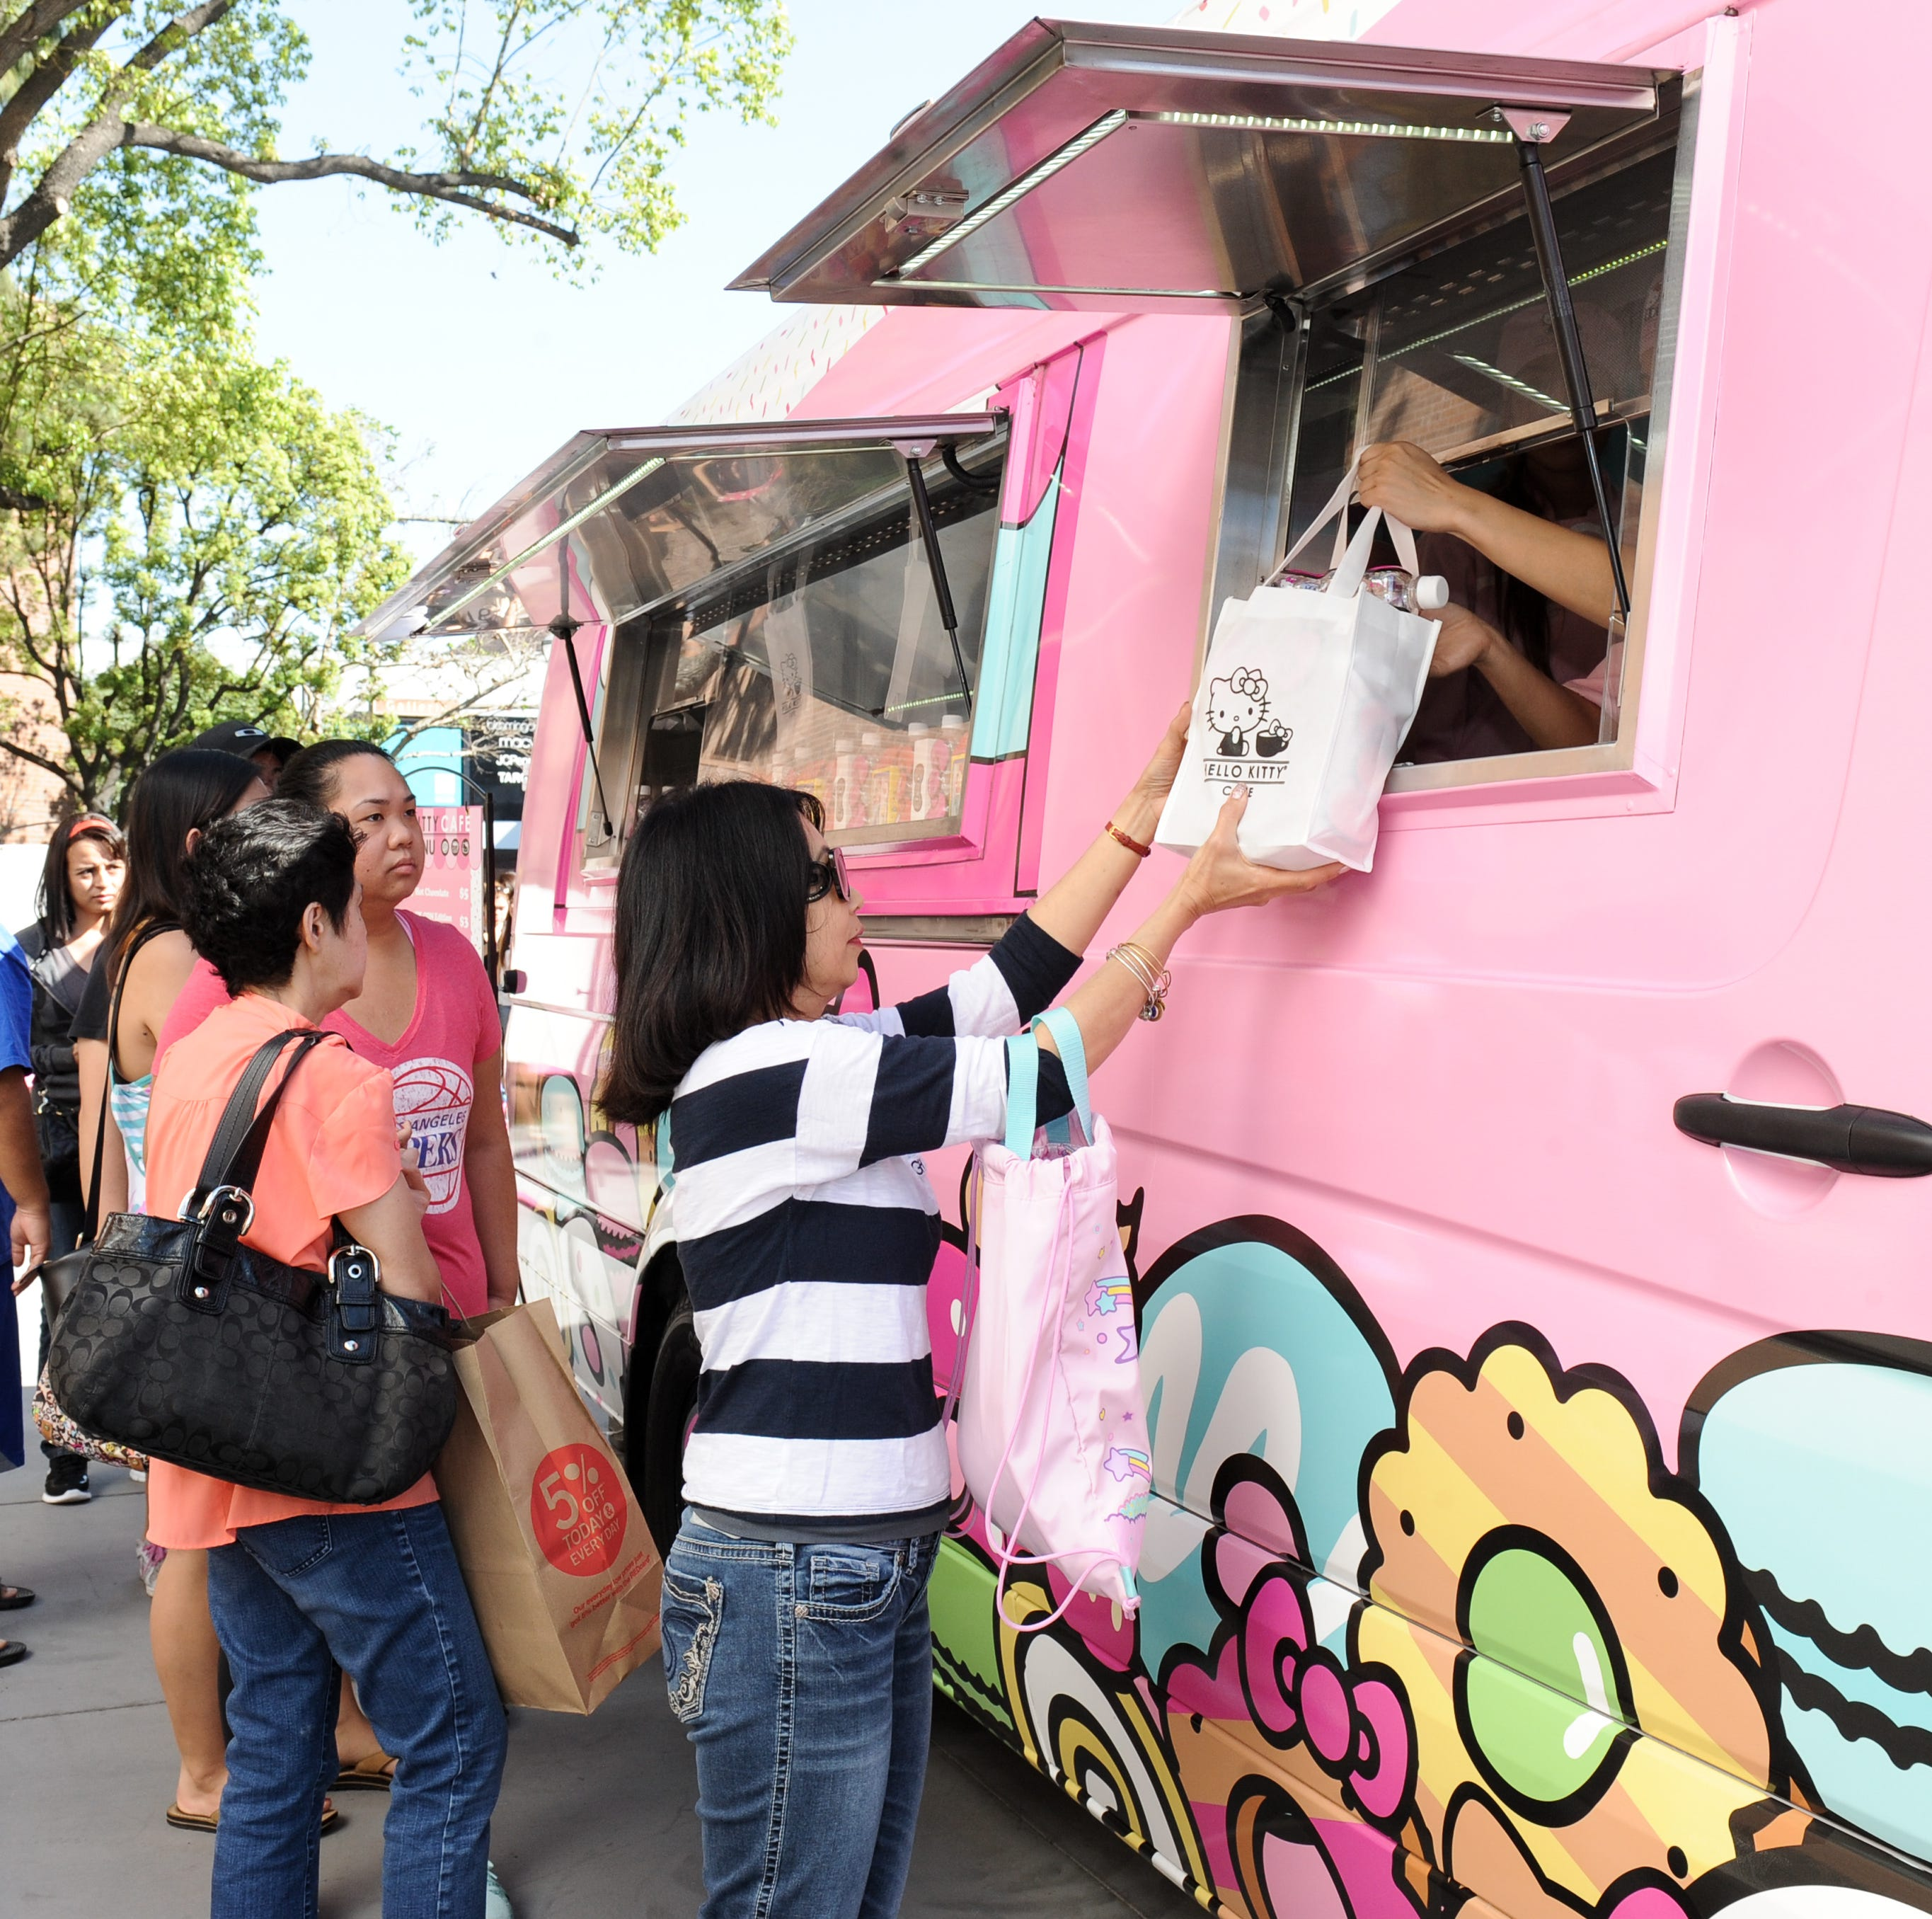 The Hello Kitty Cafe Truck is coming to Louisville for the first time